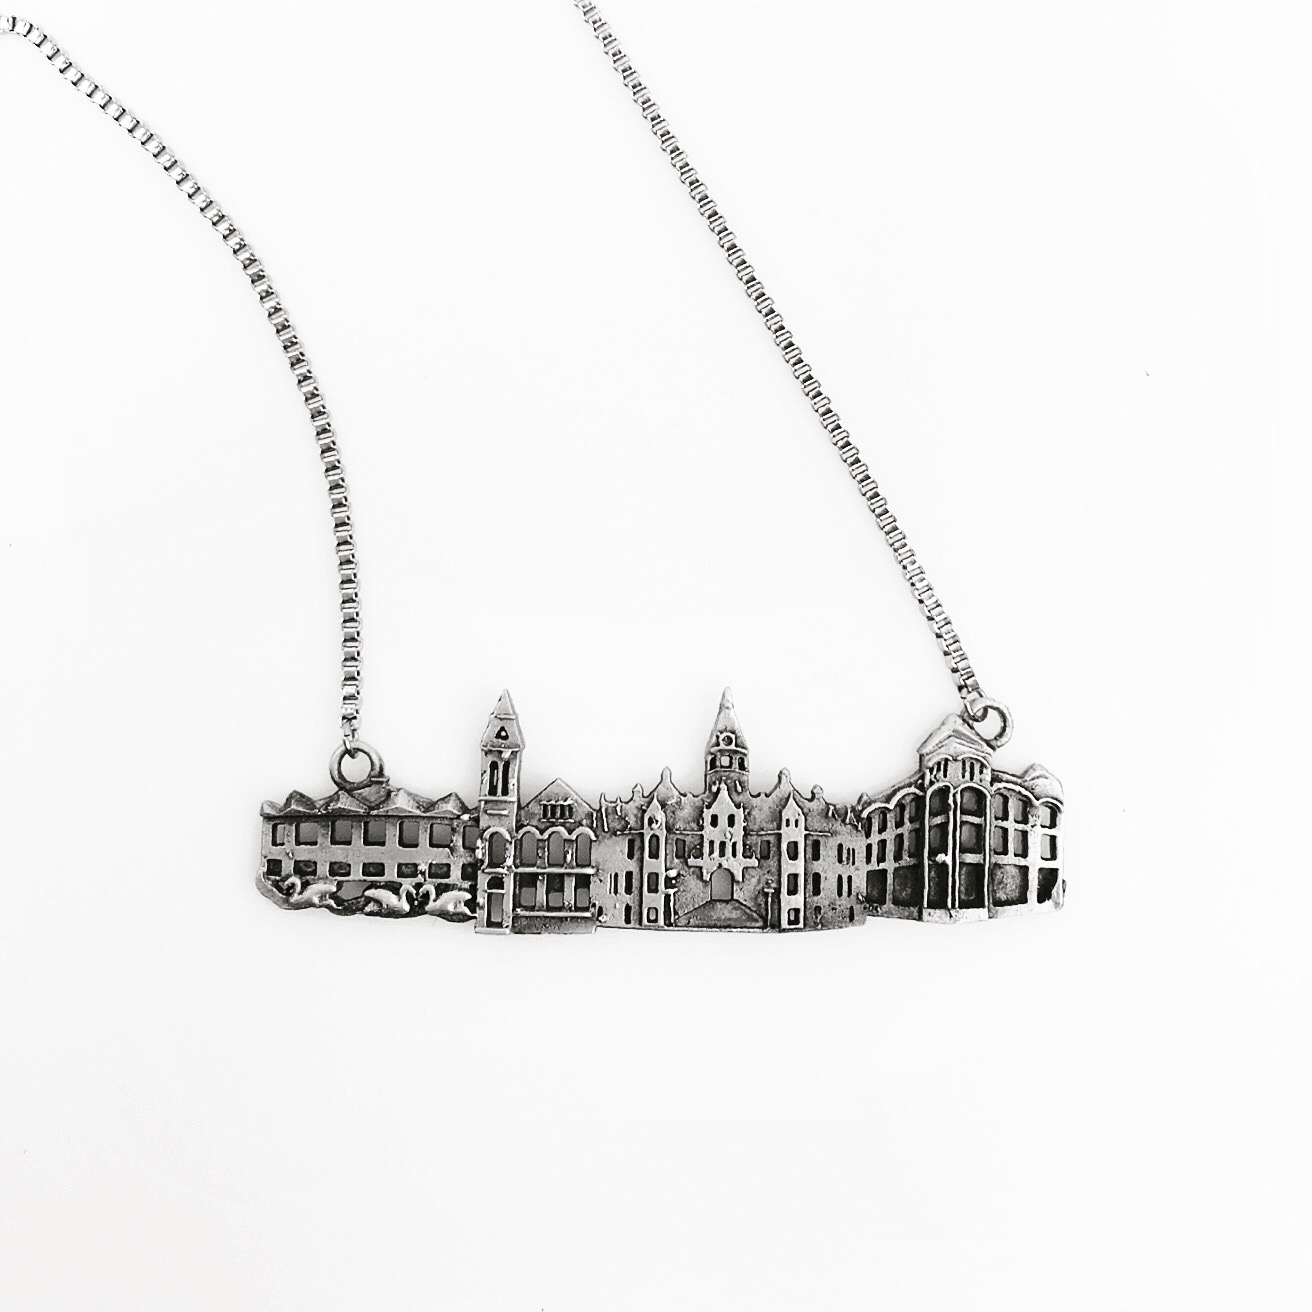 Streetscape Necklace